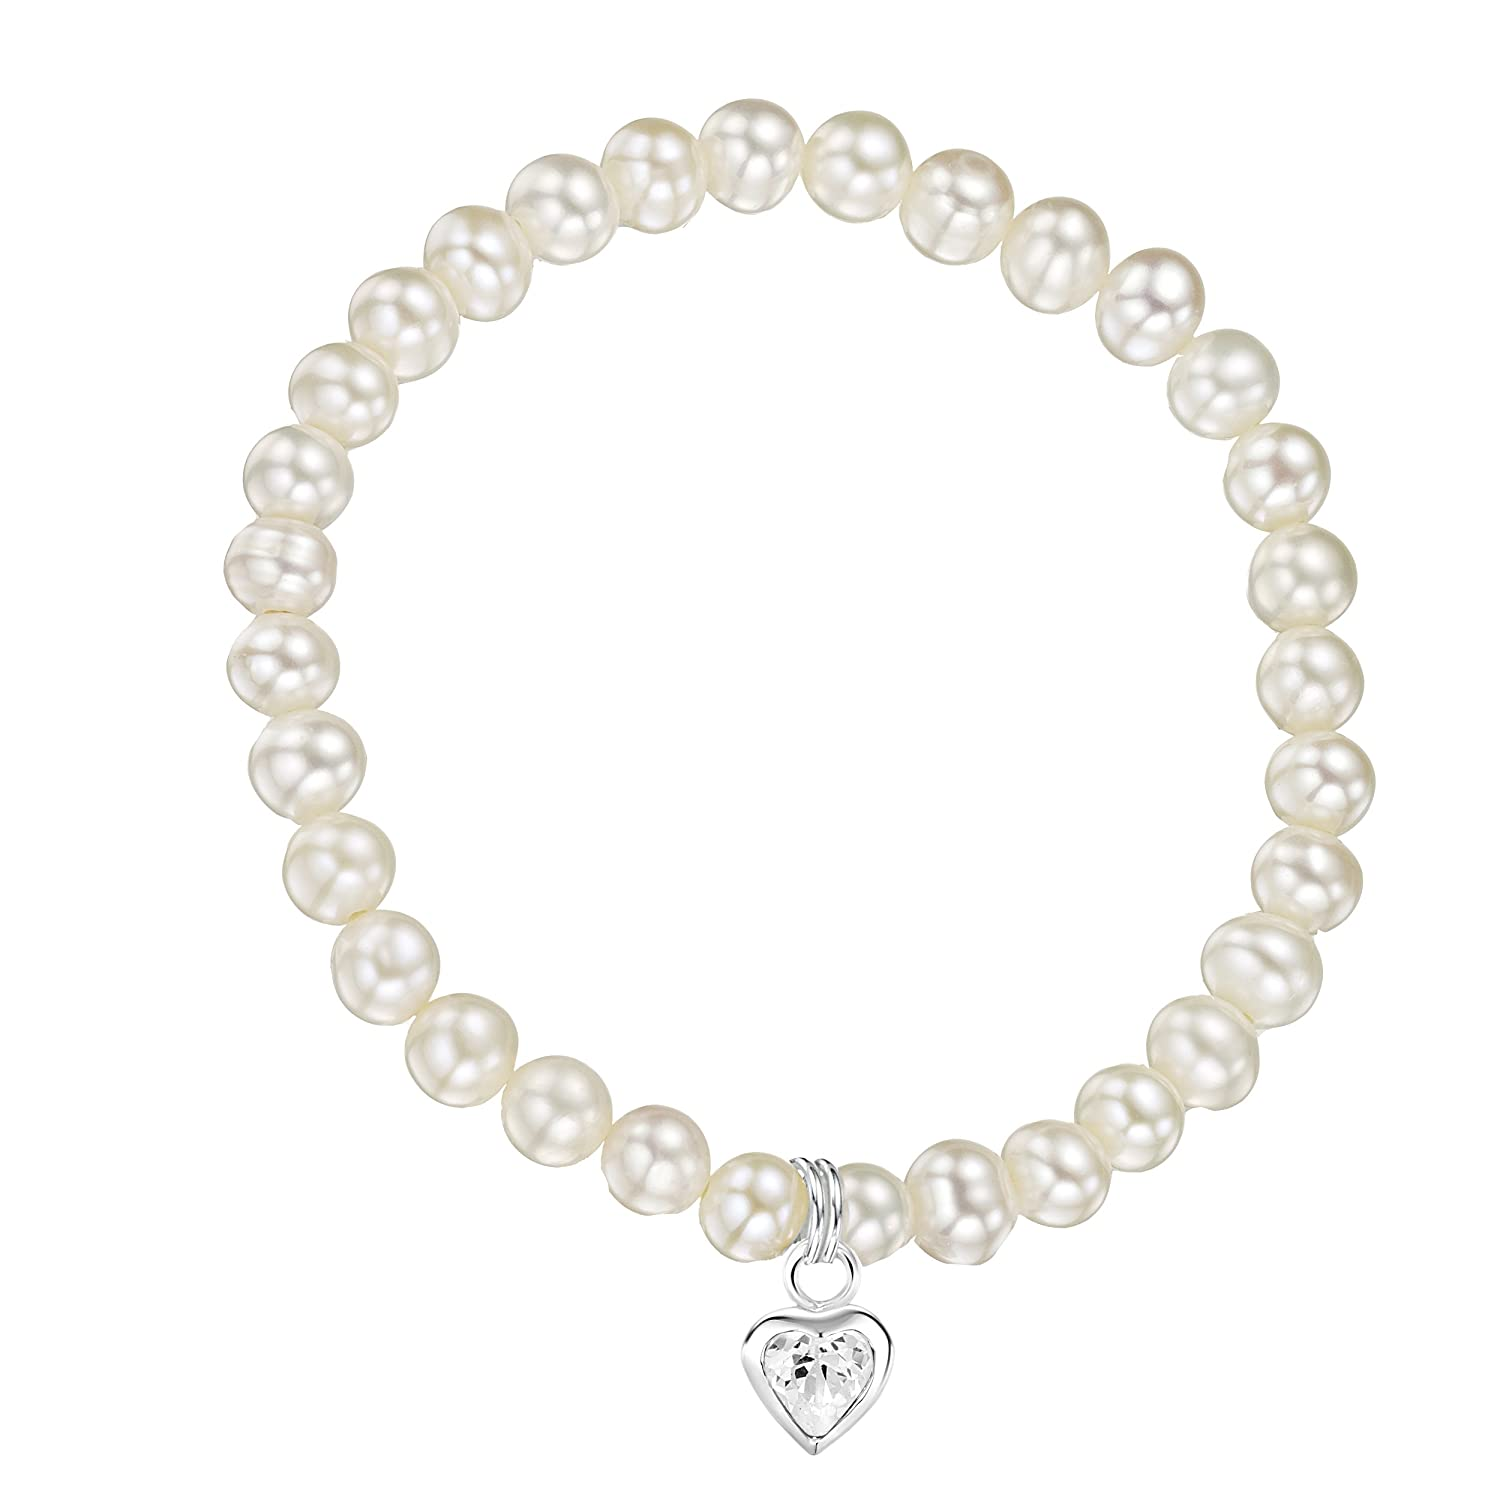 Jo for Girls Sterling Silver and Cubic Zirconia Heart Charm with White Freshwater Pearl Bracelet of 14cm